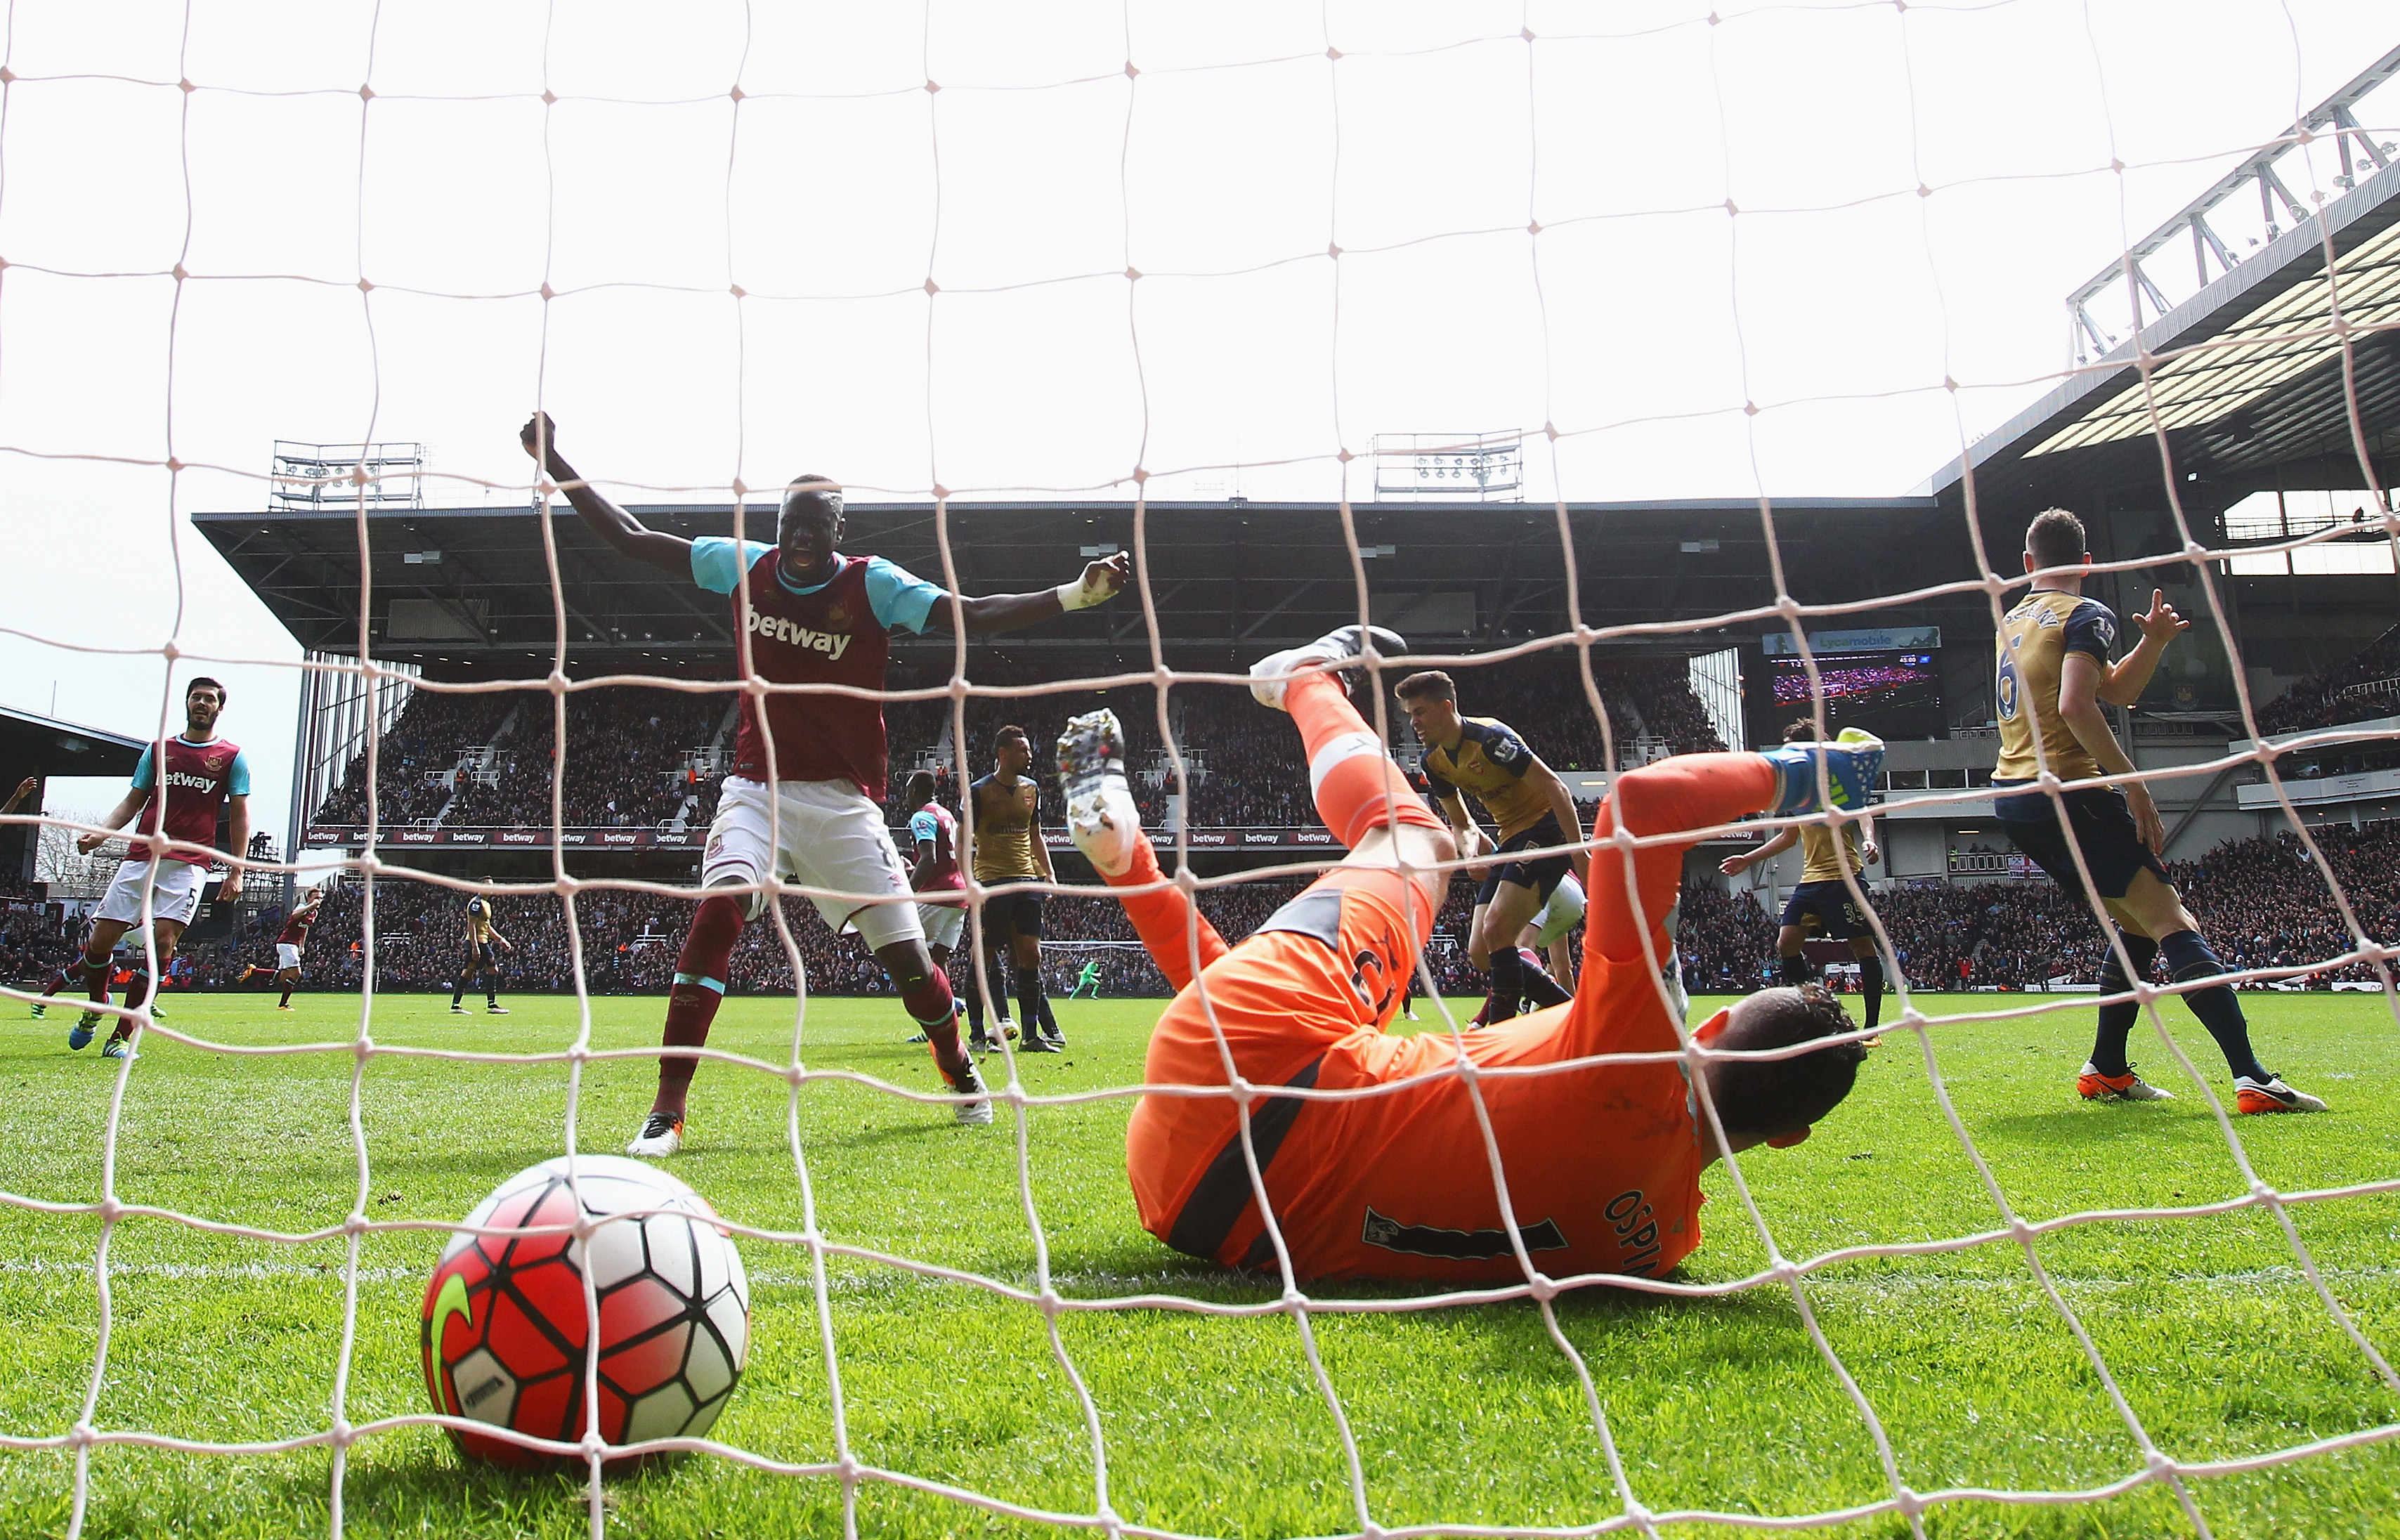 One of the uglier moments of the match: Ospina's superfluous tumble after Andy Carroll goal #2.